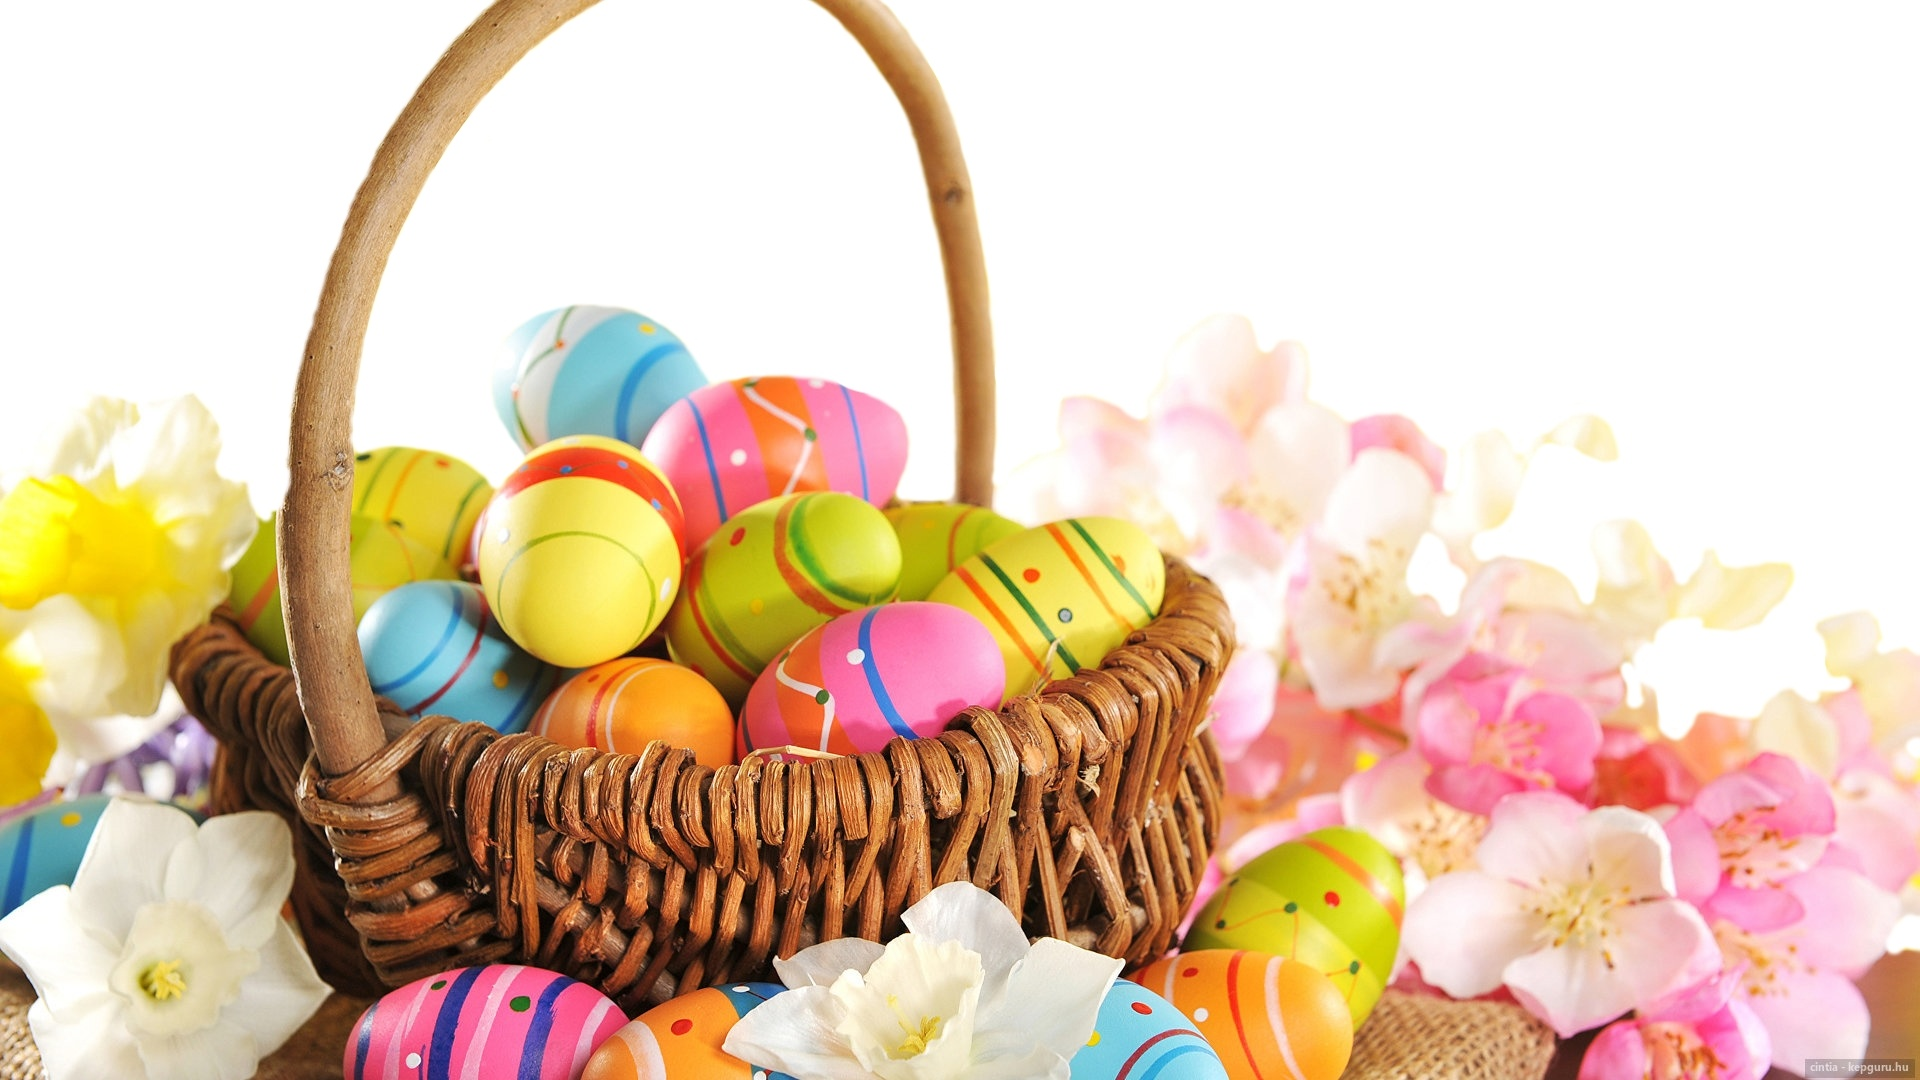 Easter Eggs In A Basket wallpaper for pc